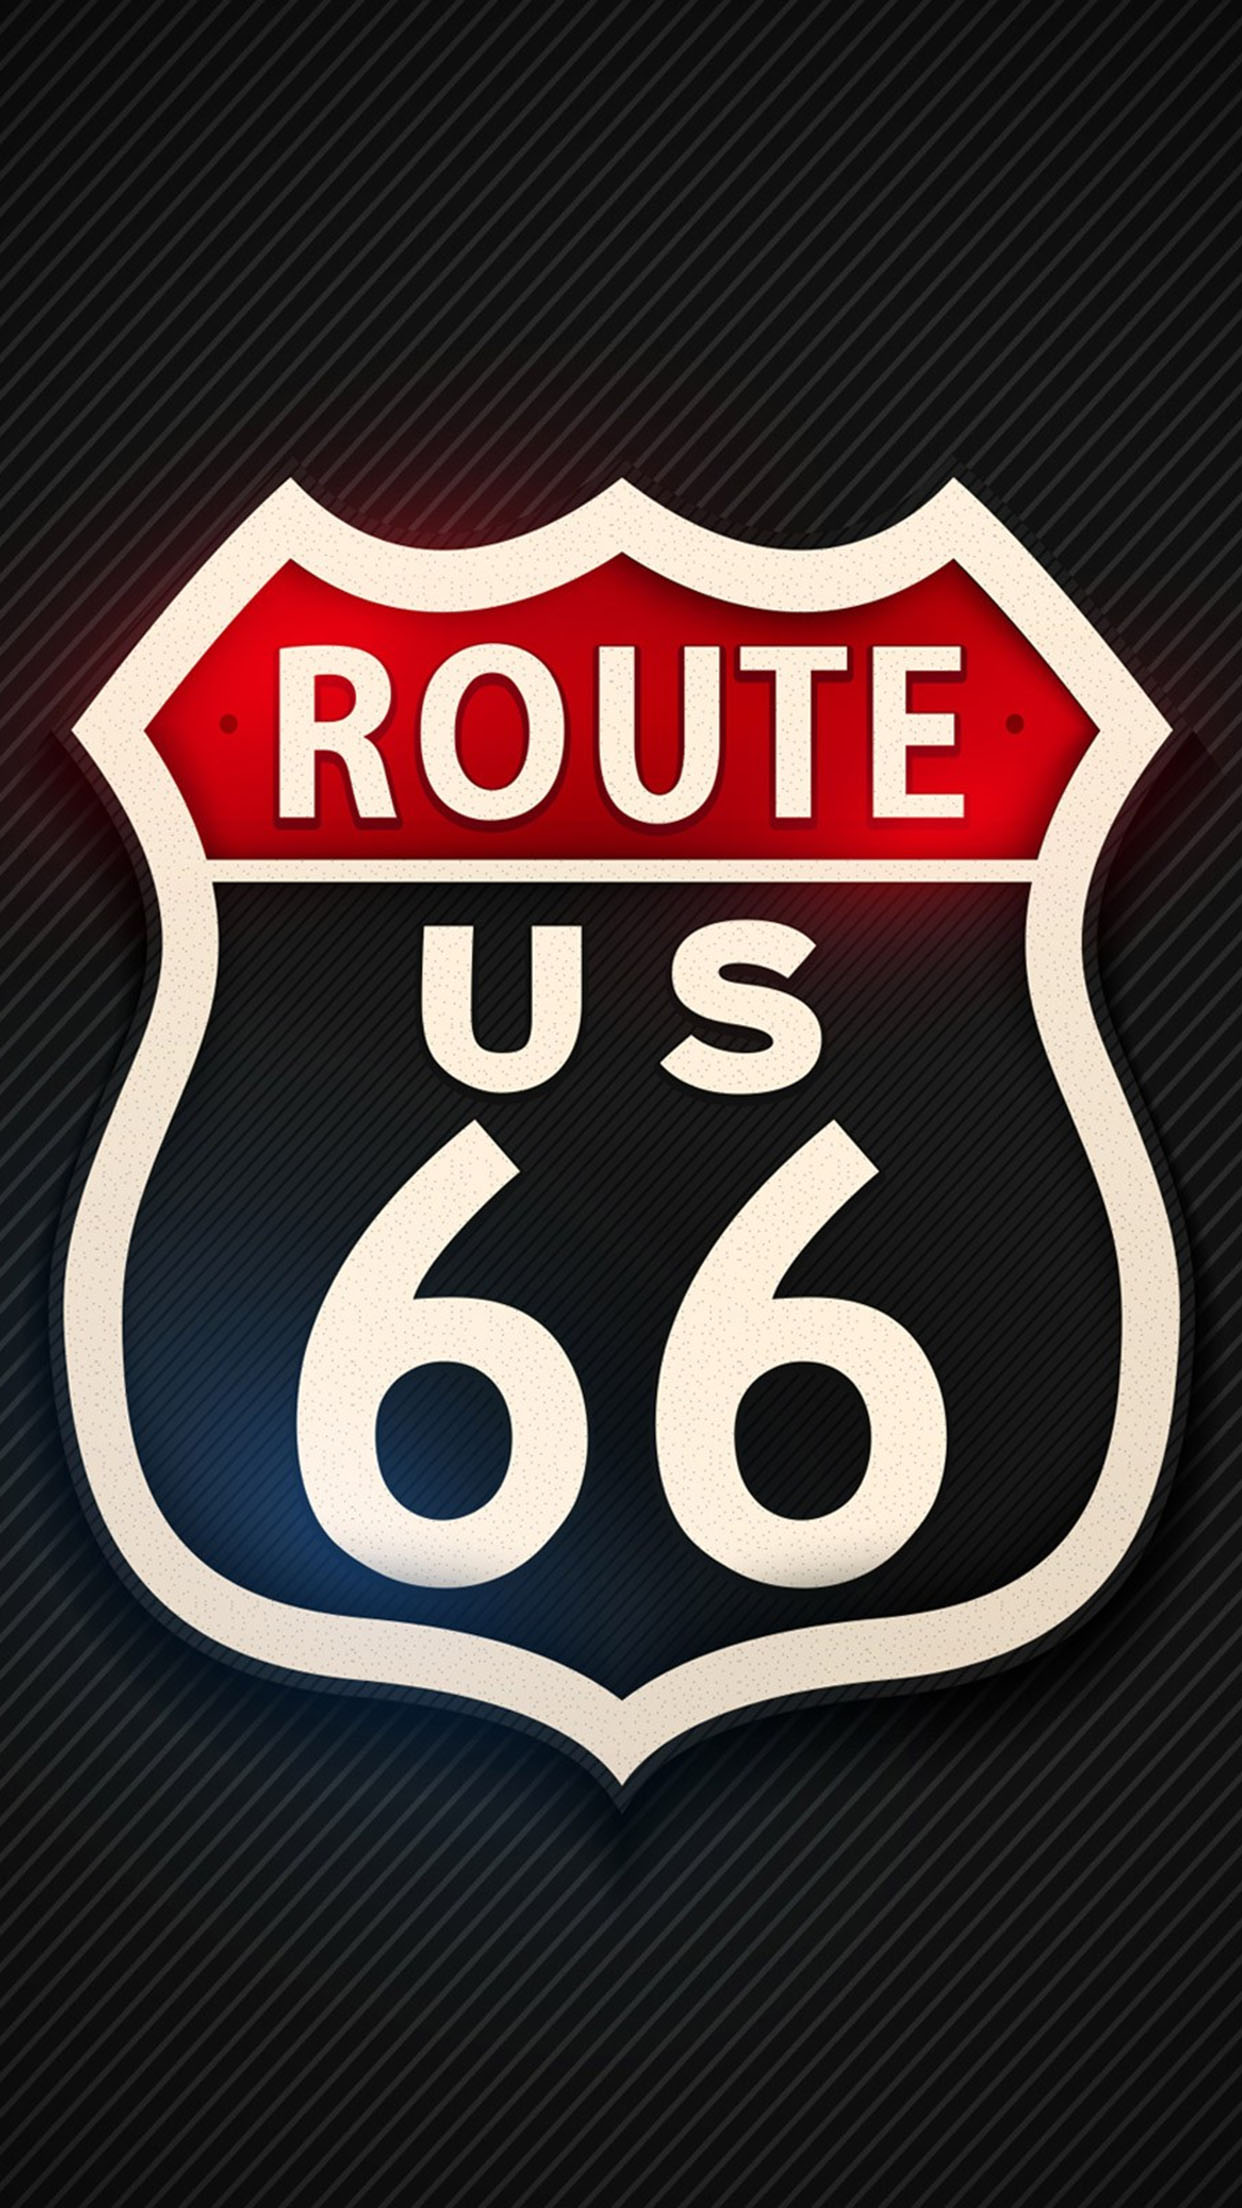 Route 66 Route 66 2 3Wallpapers iPhone Parallax Route 66 (2)